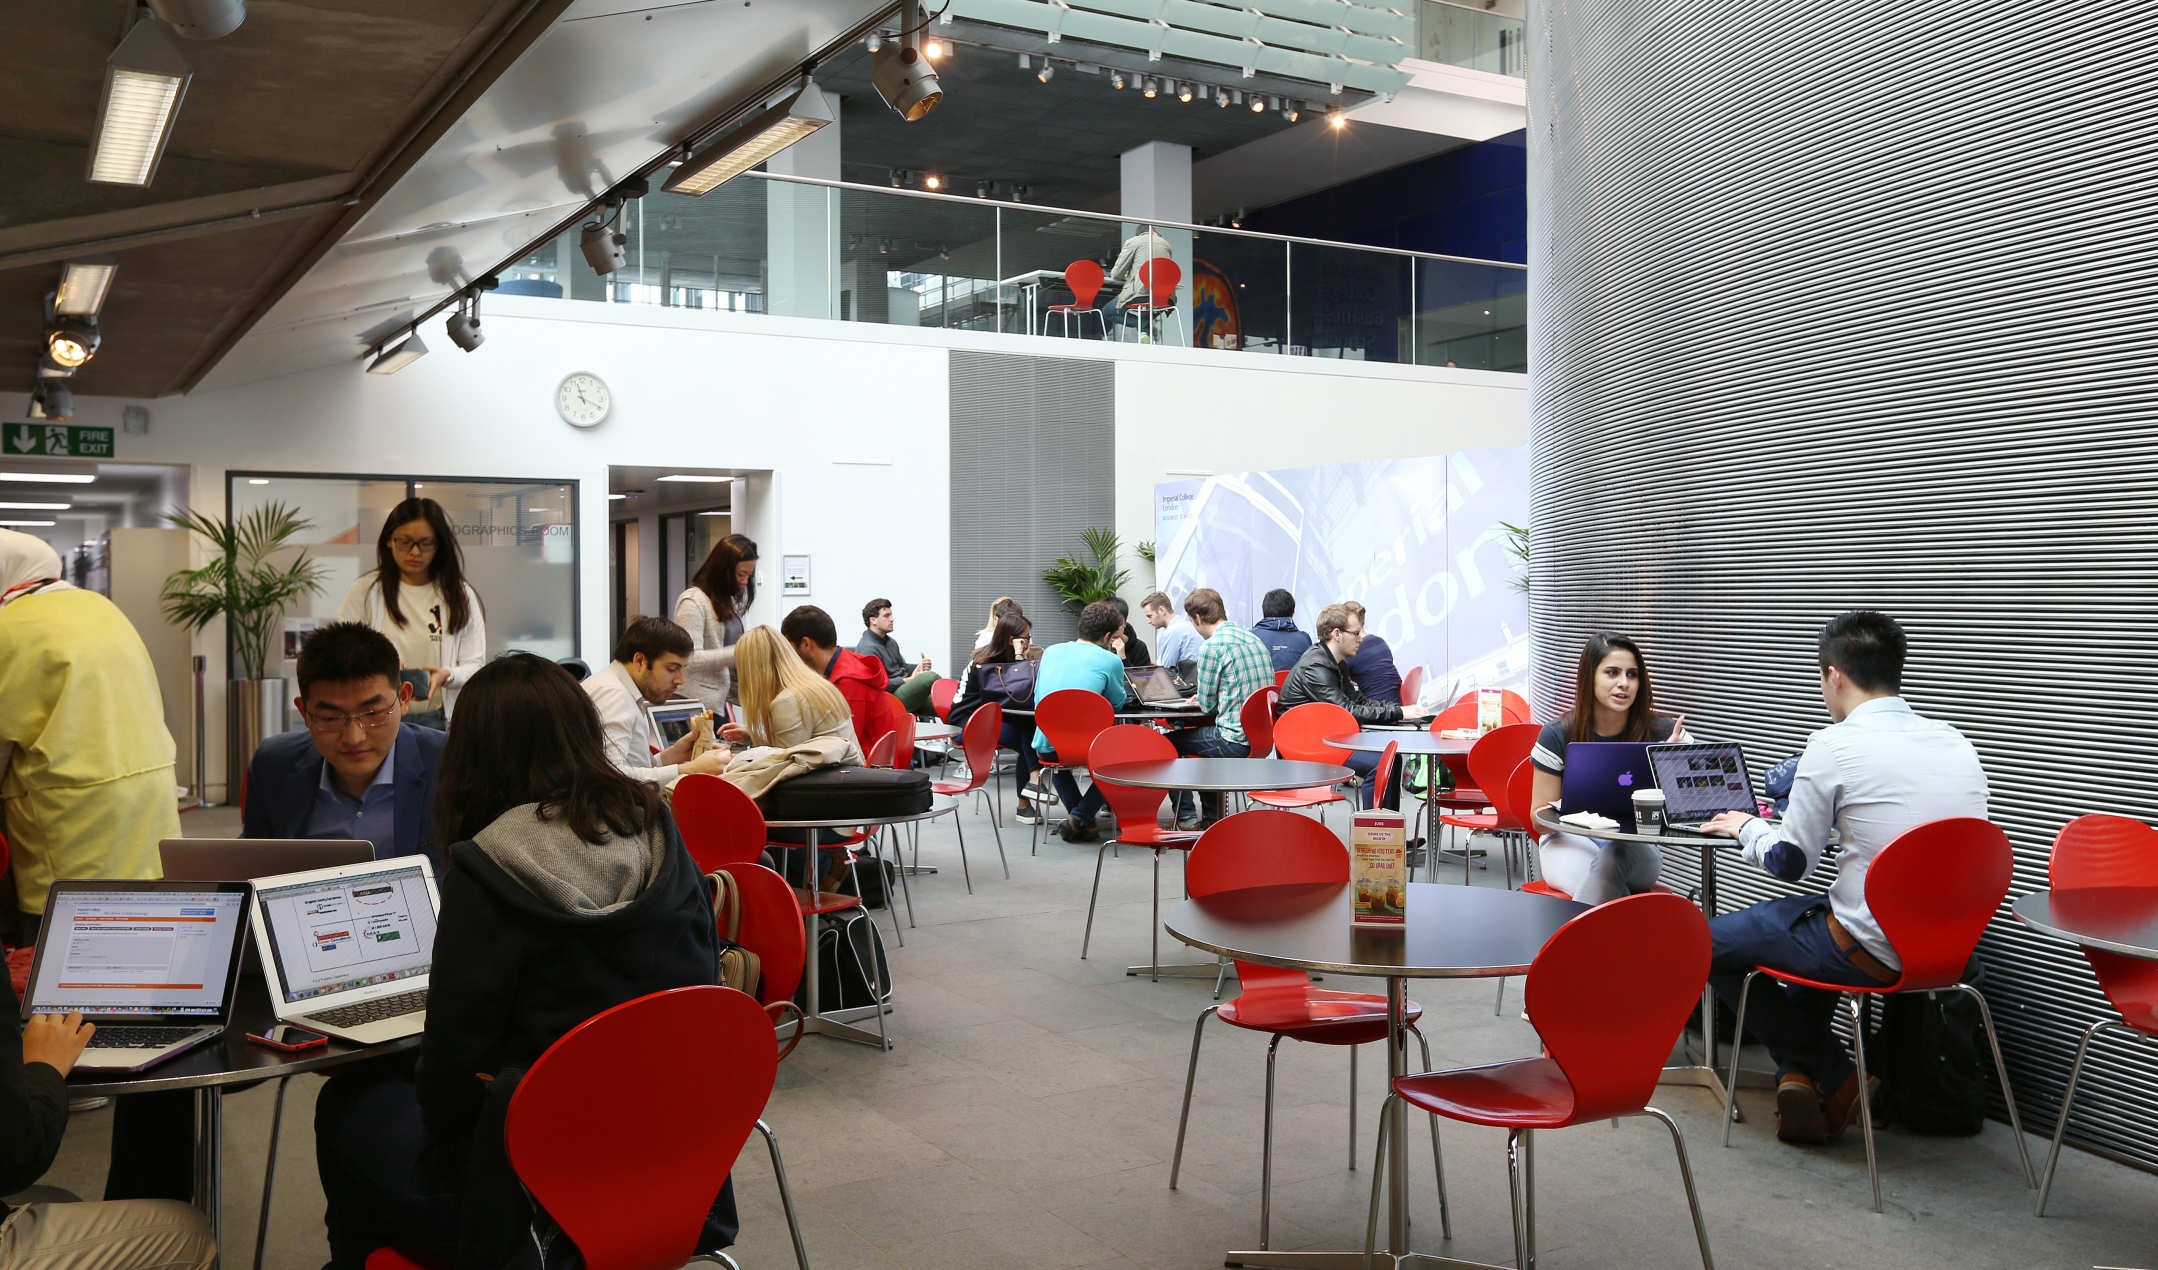 Business School Cafe Administration And Support Services